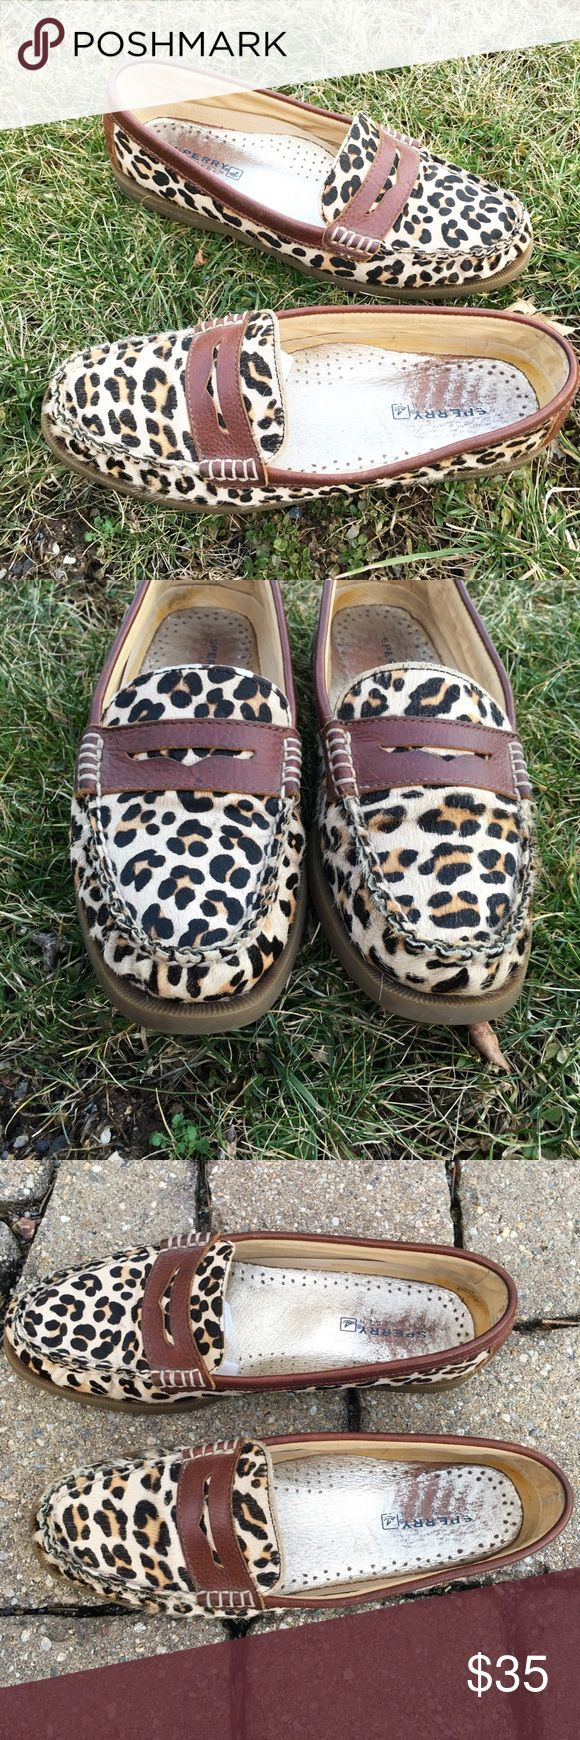 Sperry topsider in leapord print calf hair Soft calf hair sperry topsiders. Only main wear is seen on inside soles. Sperry Top-Sider Shoes Flats & Loafers